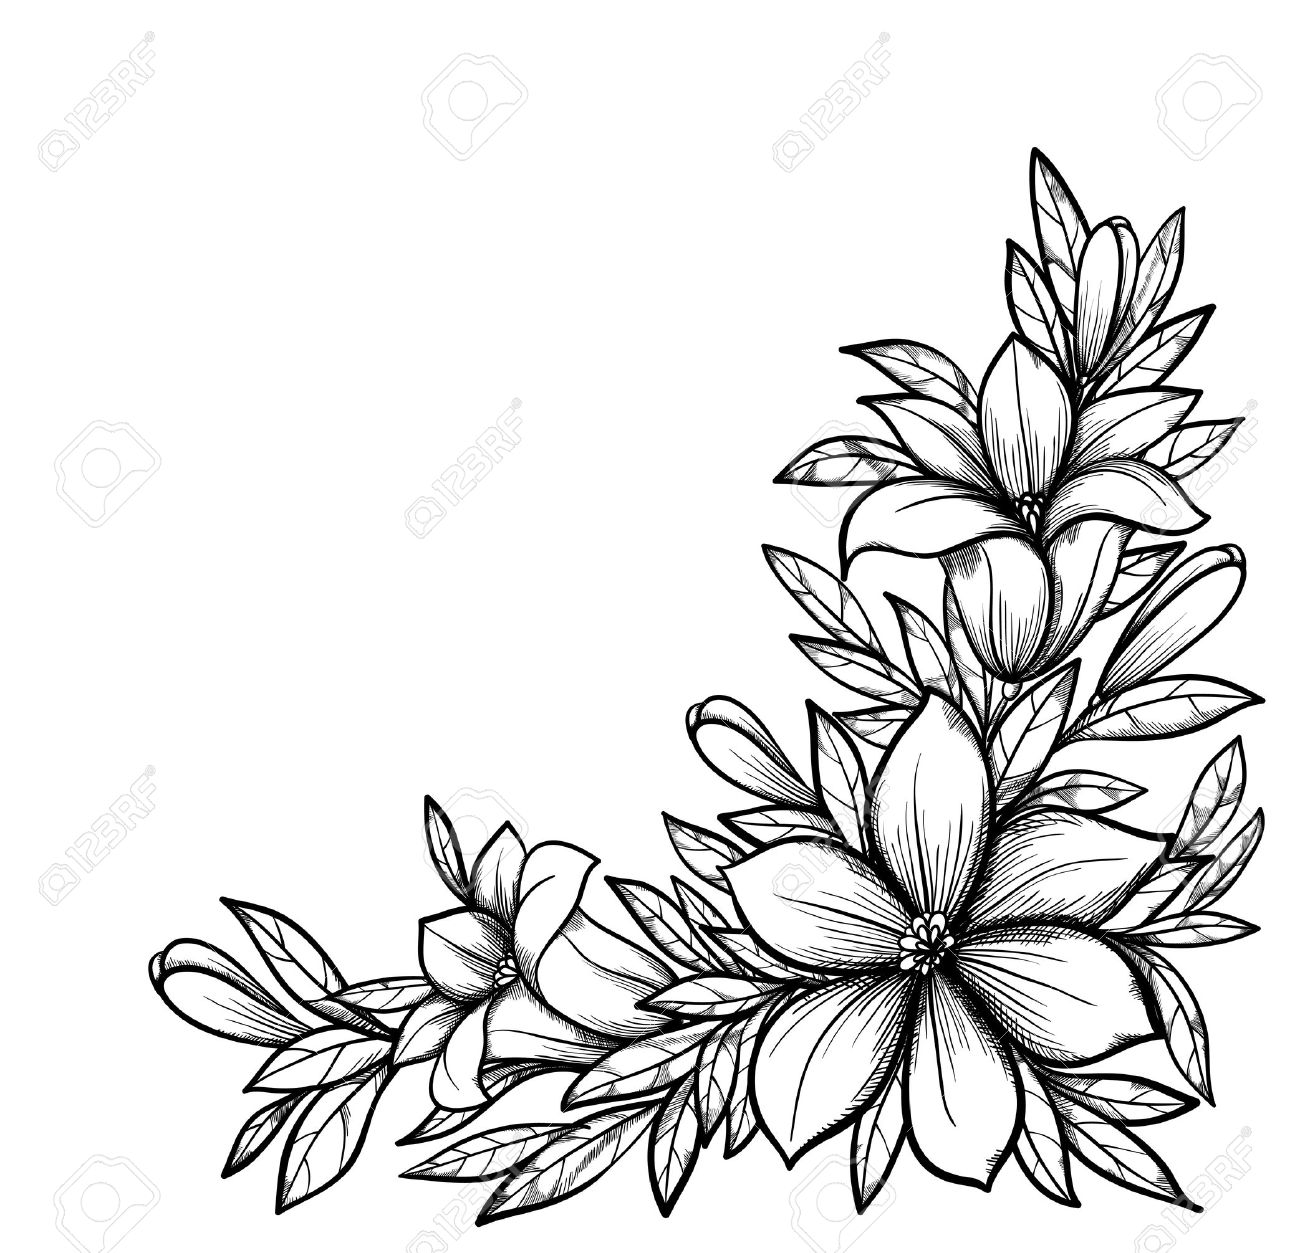 Beautiful black and white branch with flowers drawn in graphical retro style perfect for background greeting